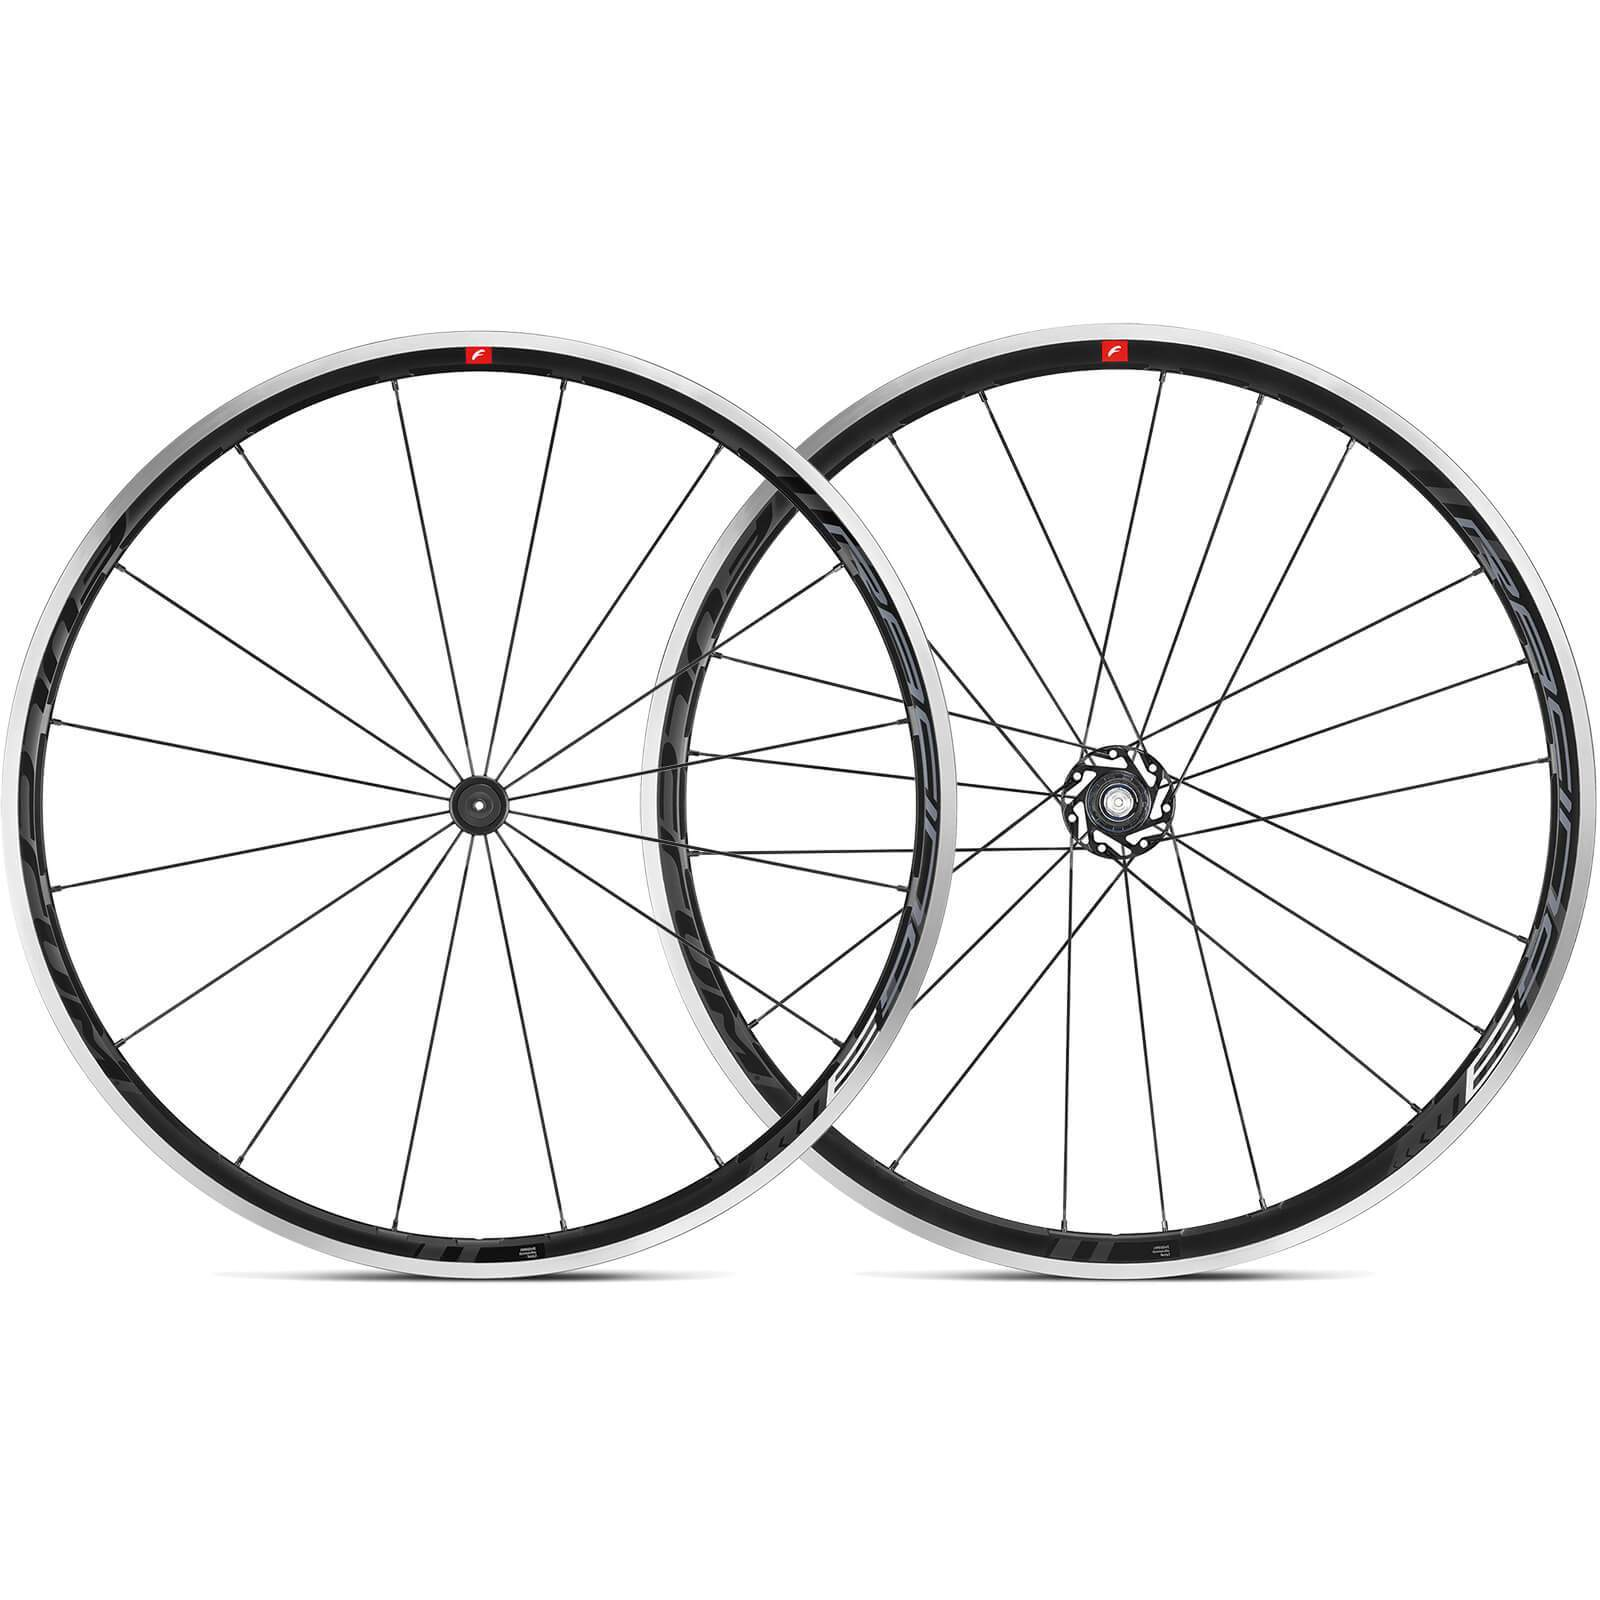 Fulcrum Components > Factory Wheels Fulcrum 2019 Racing 3 Wheelset - Shimano